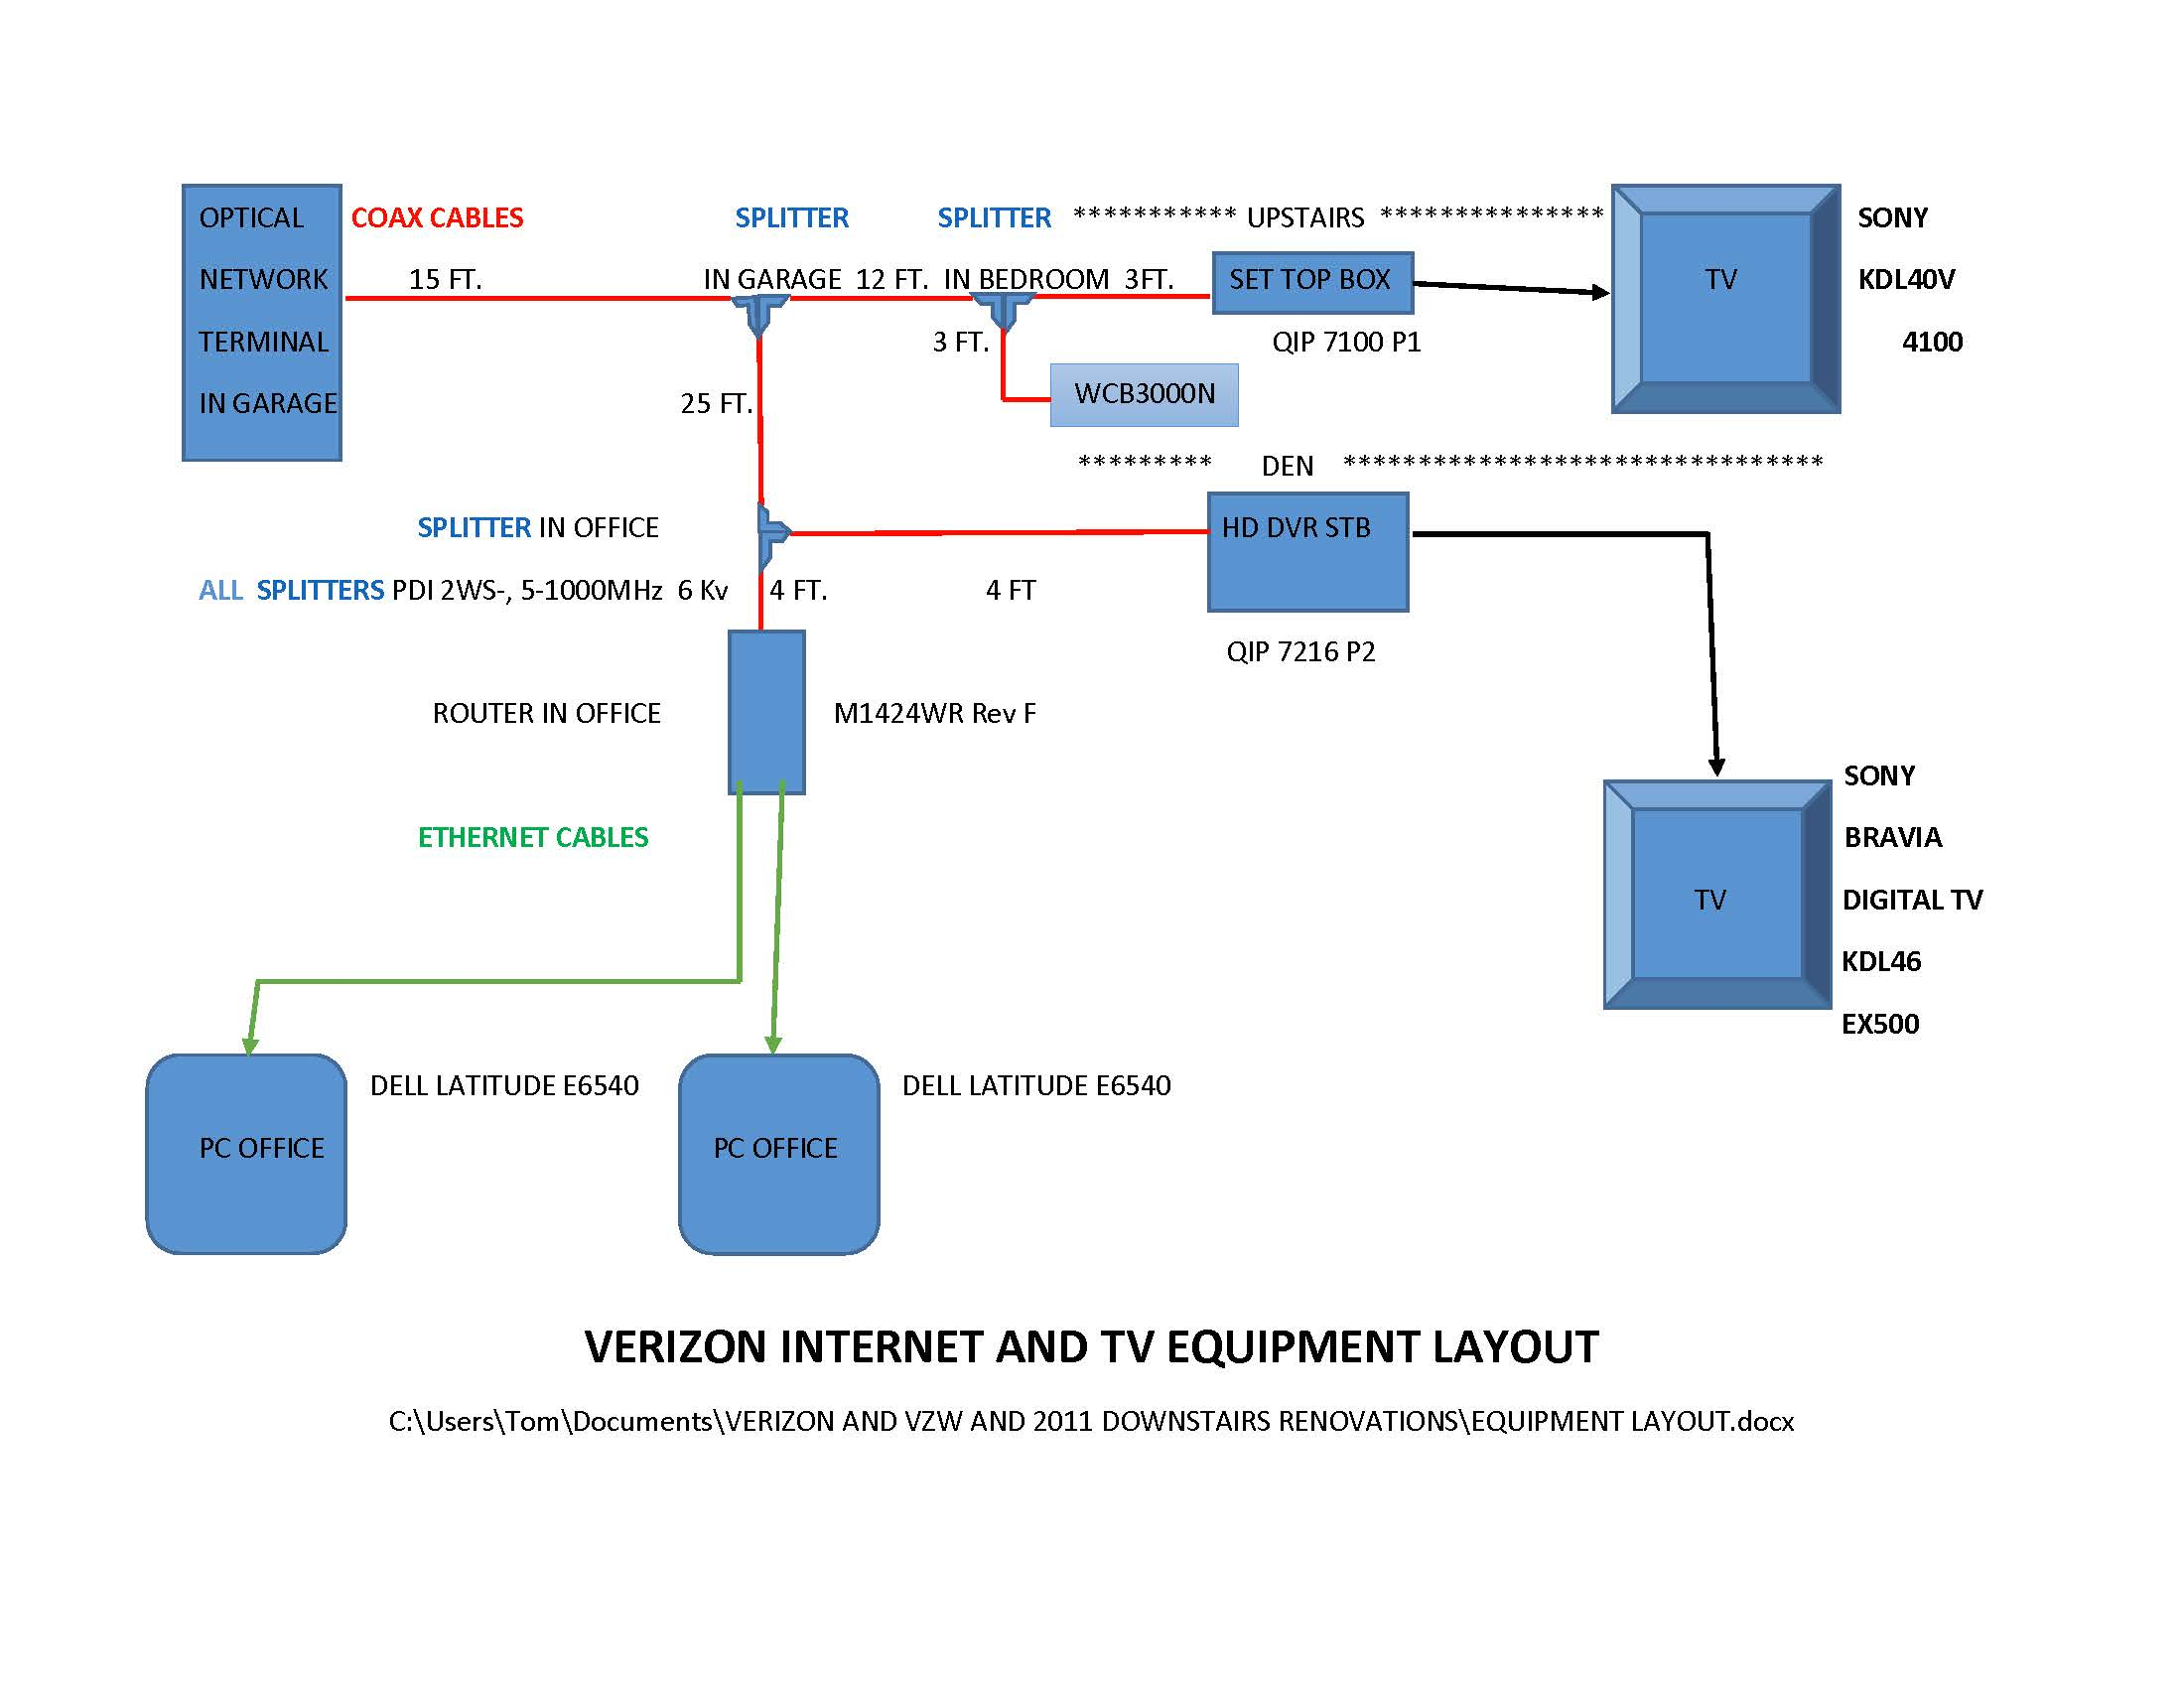 medium resolution of verizon dsl phone line wiring diagram dsl wiring basics wiring diagram odicis